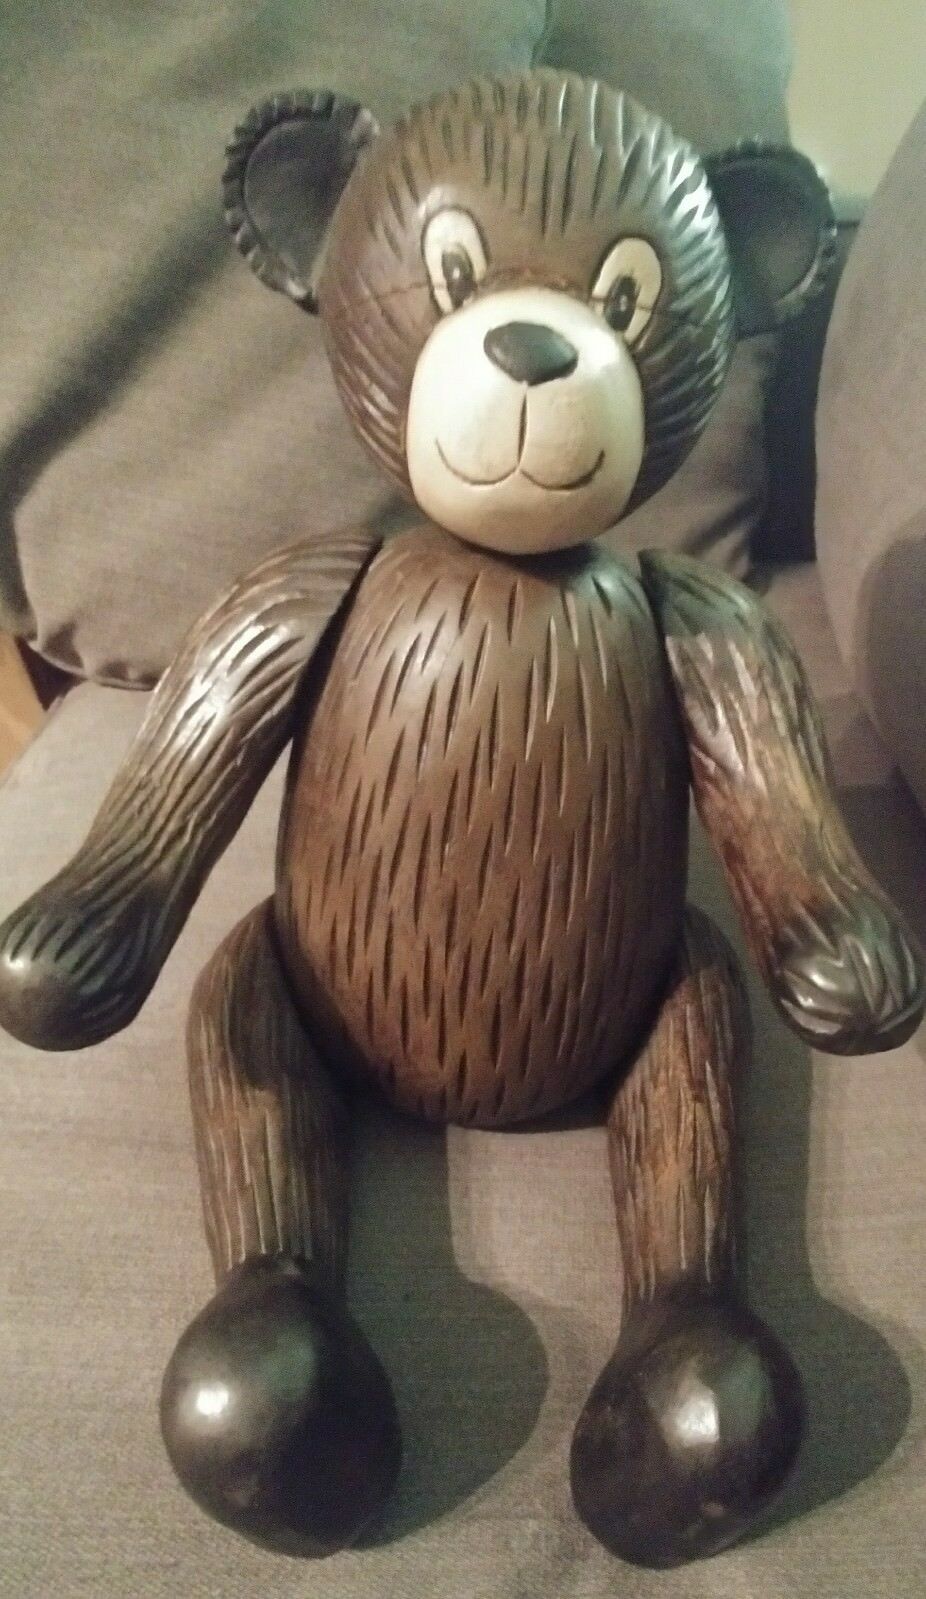 Antique Vintage Wooden Carved Teddy Bear w  Moveable Arms Legs & Head 17 Inches